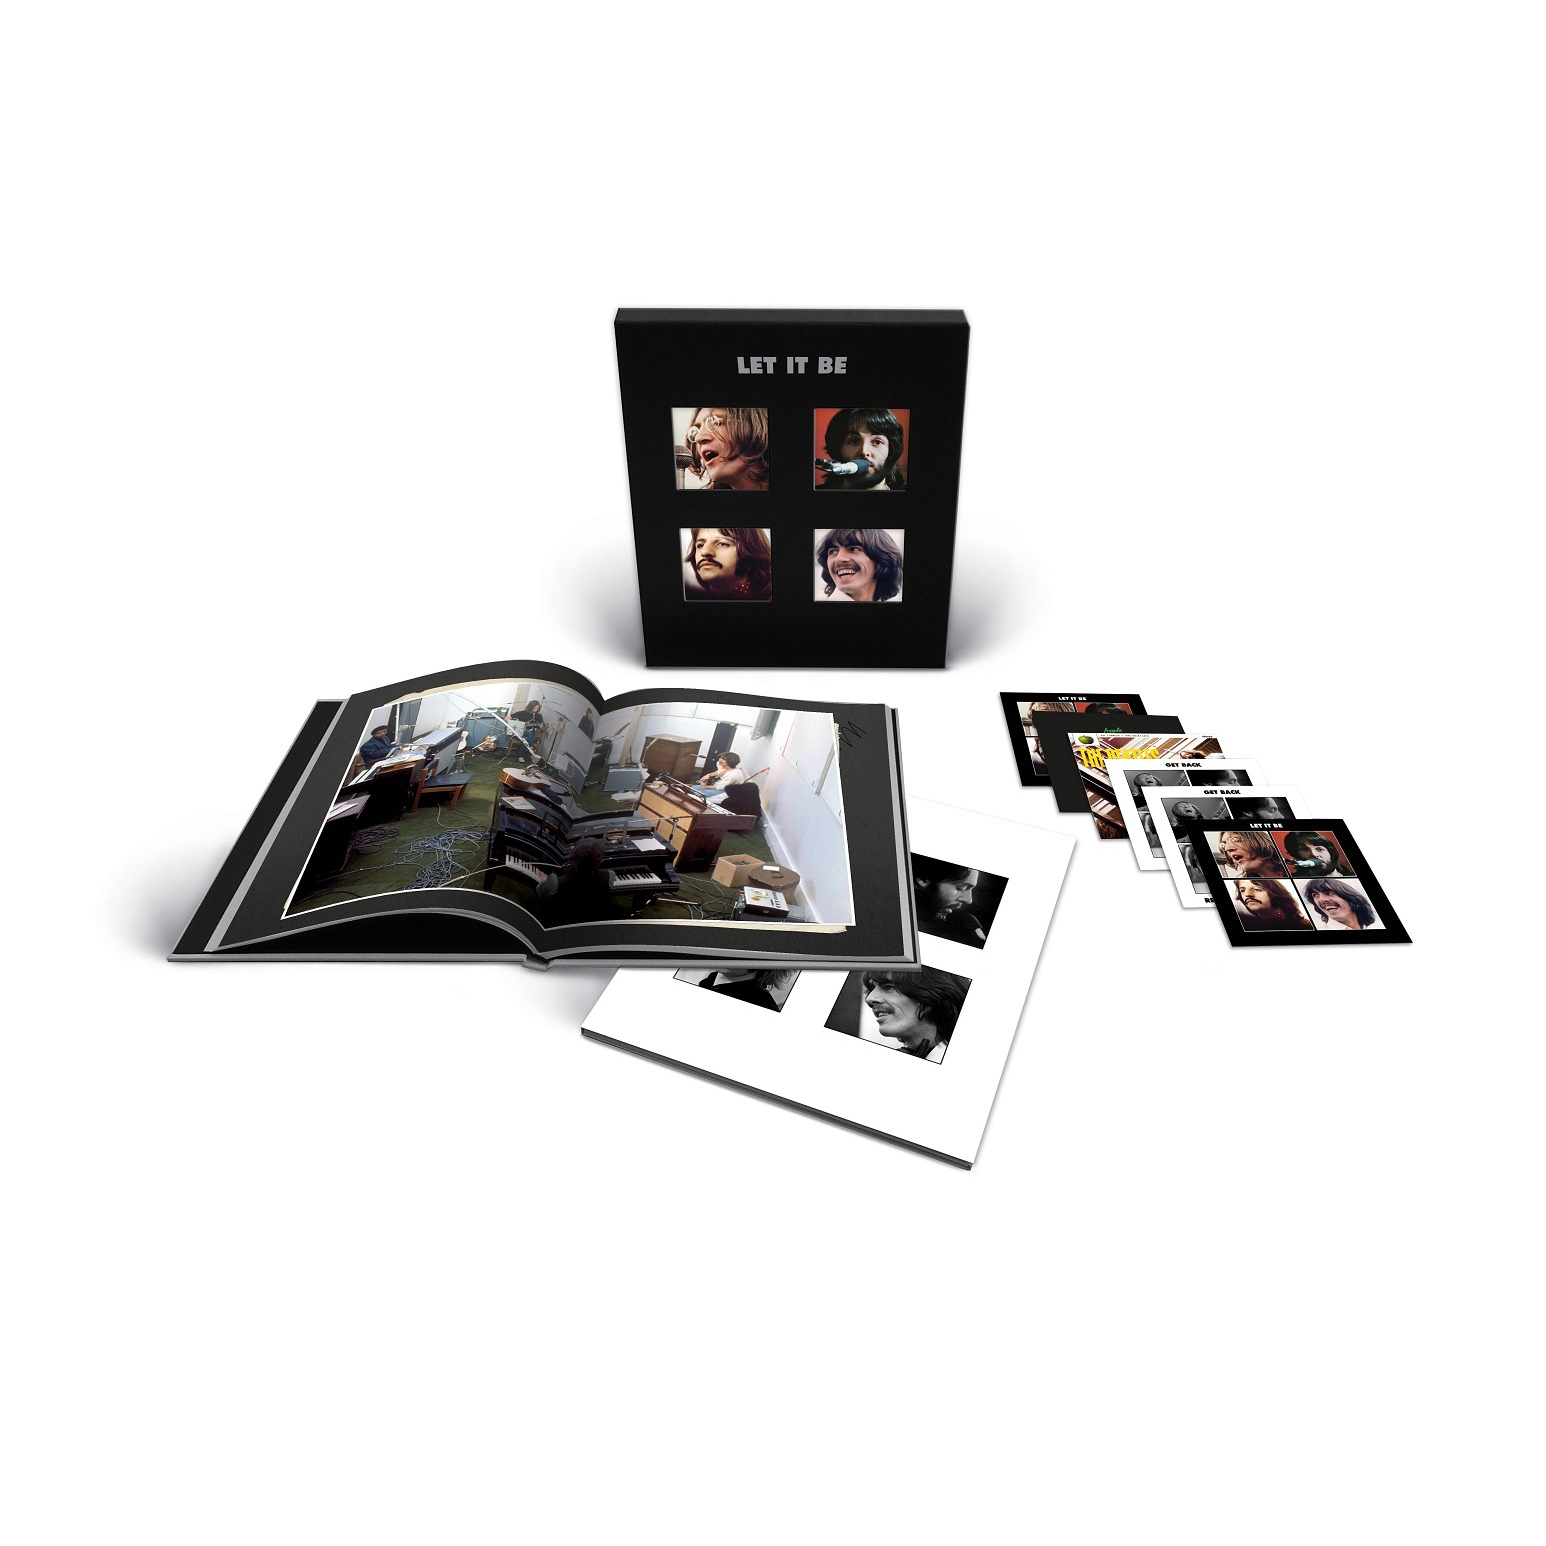 The Beatles Let It Be (Special Edition) Super Deluxe 5CD & Blu-Ray Audio Box Set